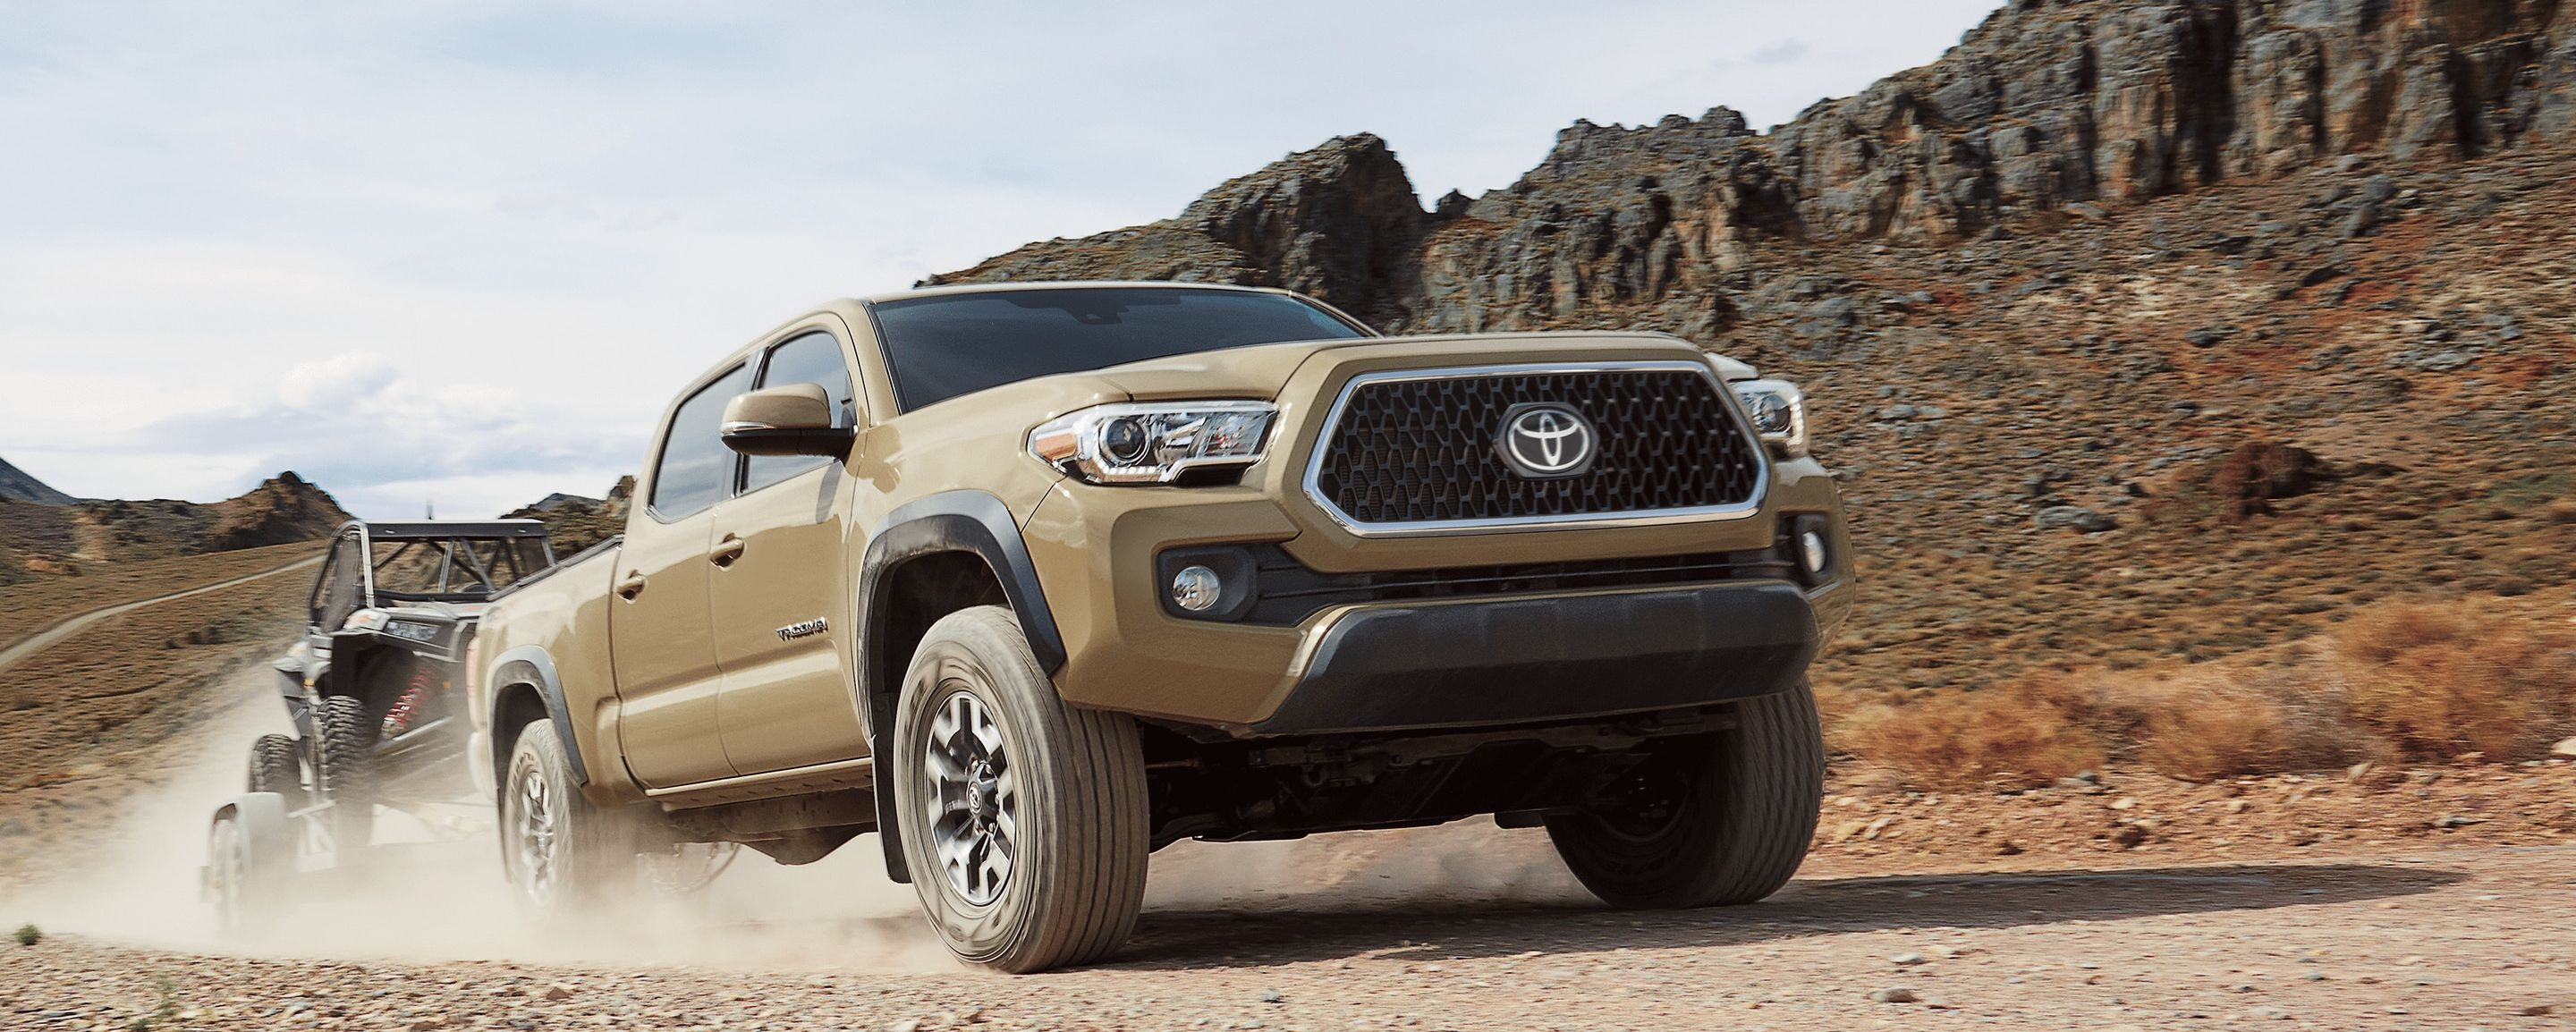 2019 Toyota Tacoma for Sale near Glen Mills, PA